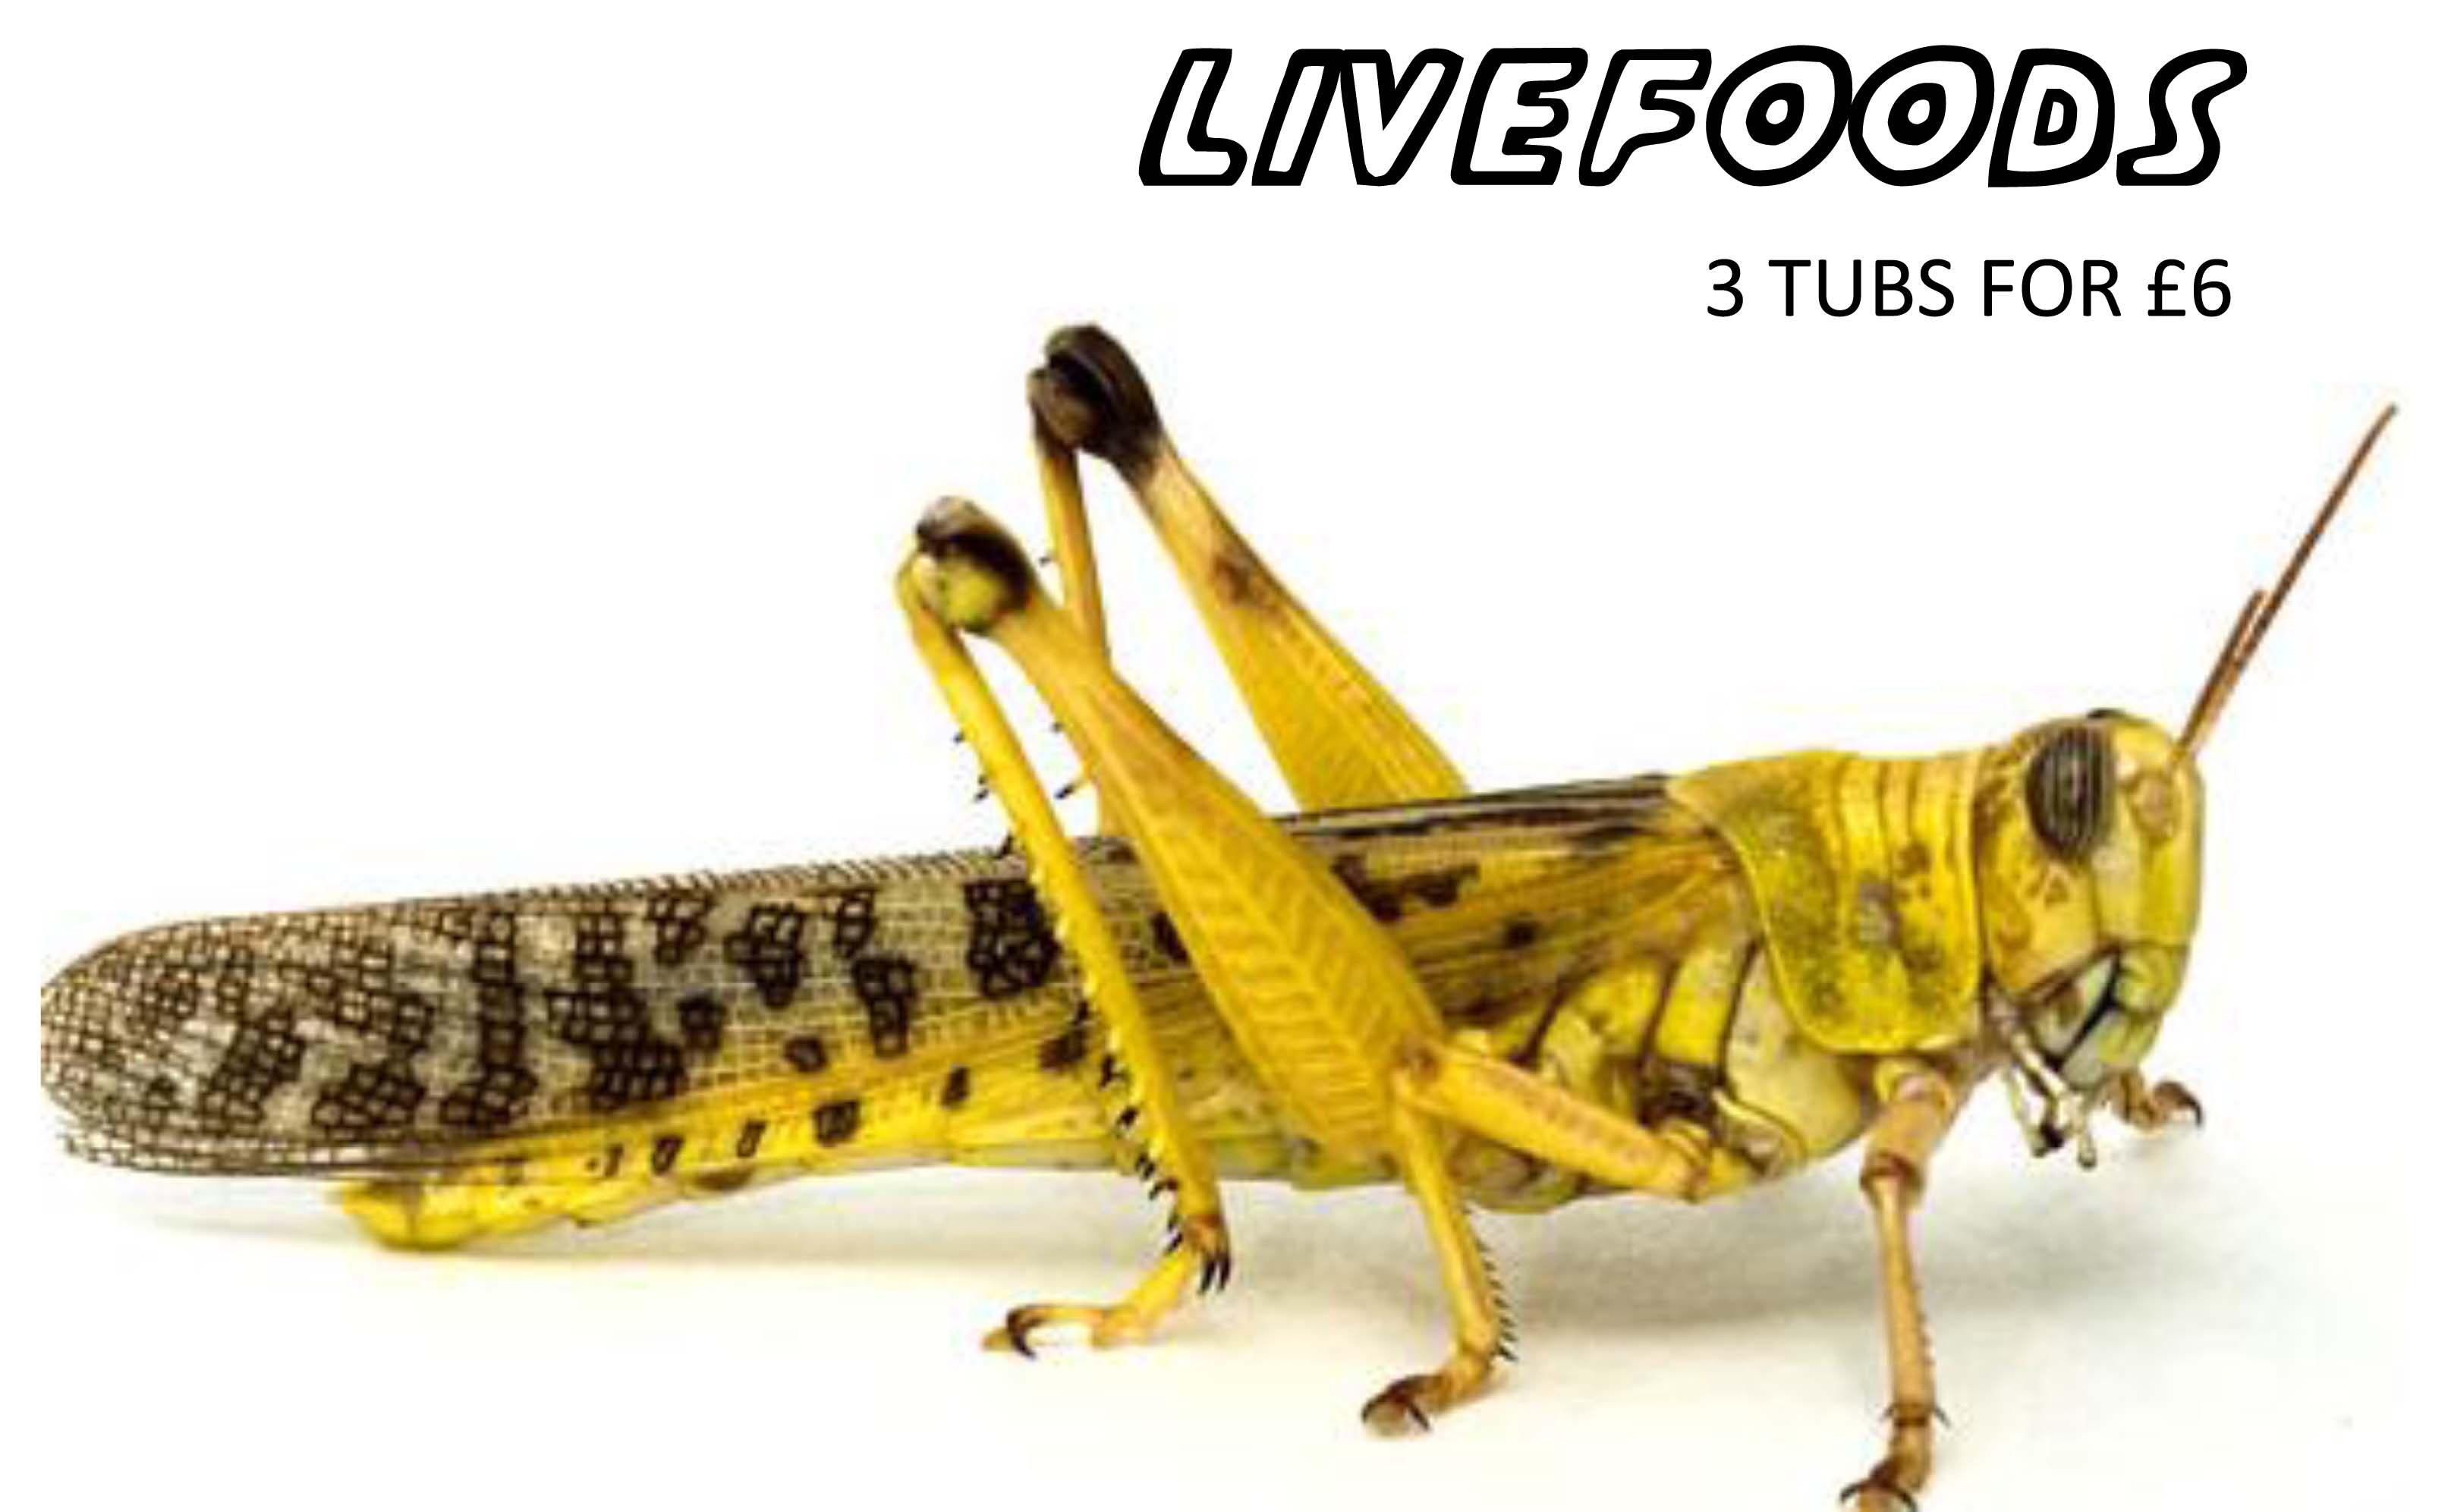 Livefoods         3 TUBS FOR £5.00